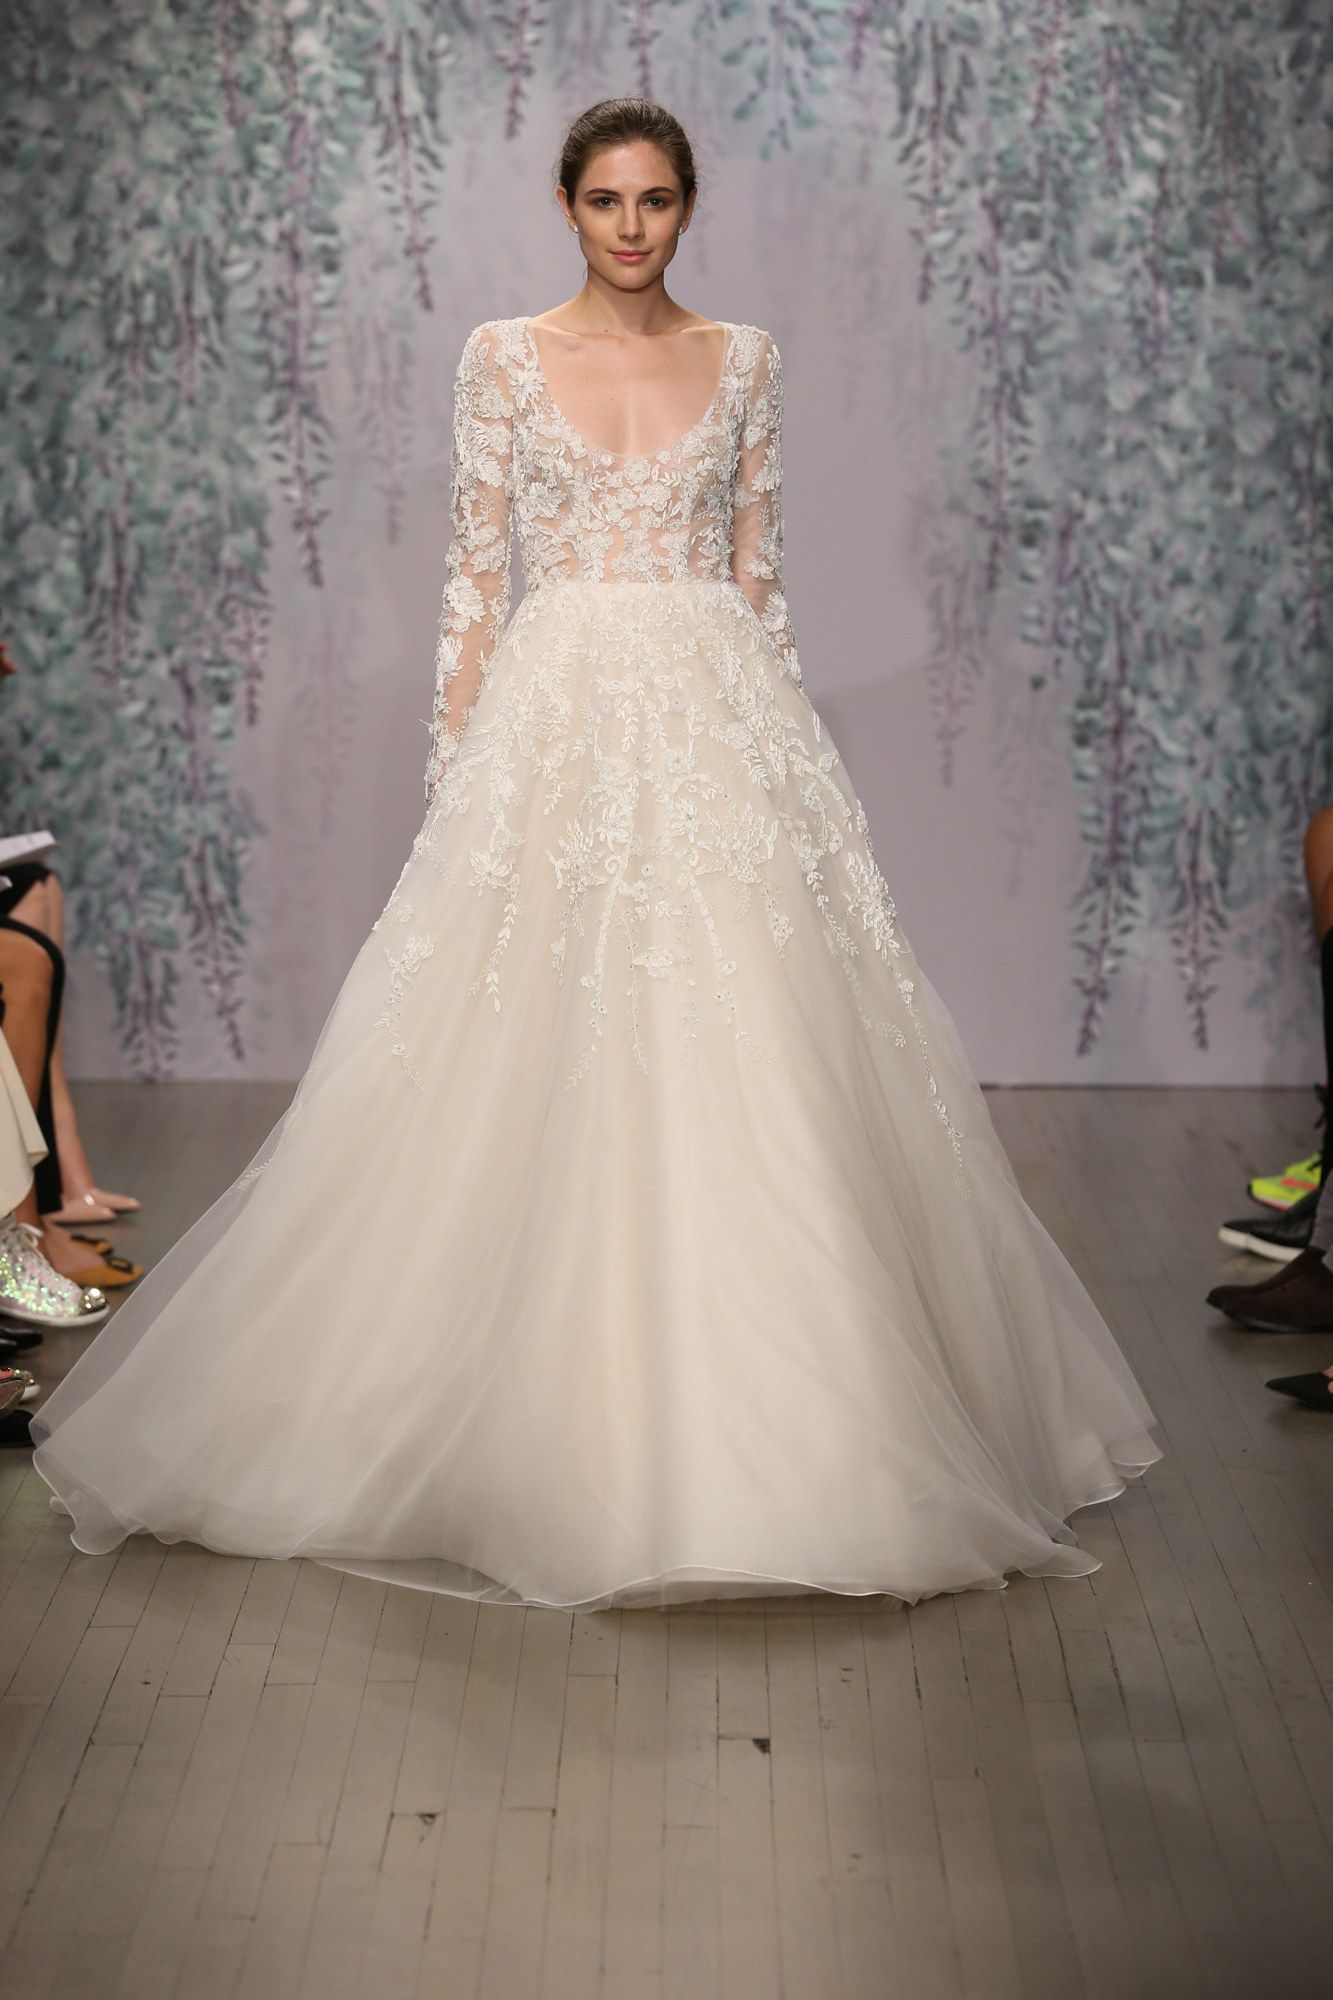 The Best Fall 2016 Wedding Dresses | Monique lhuillier